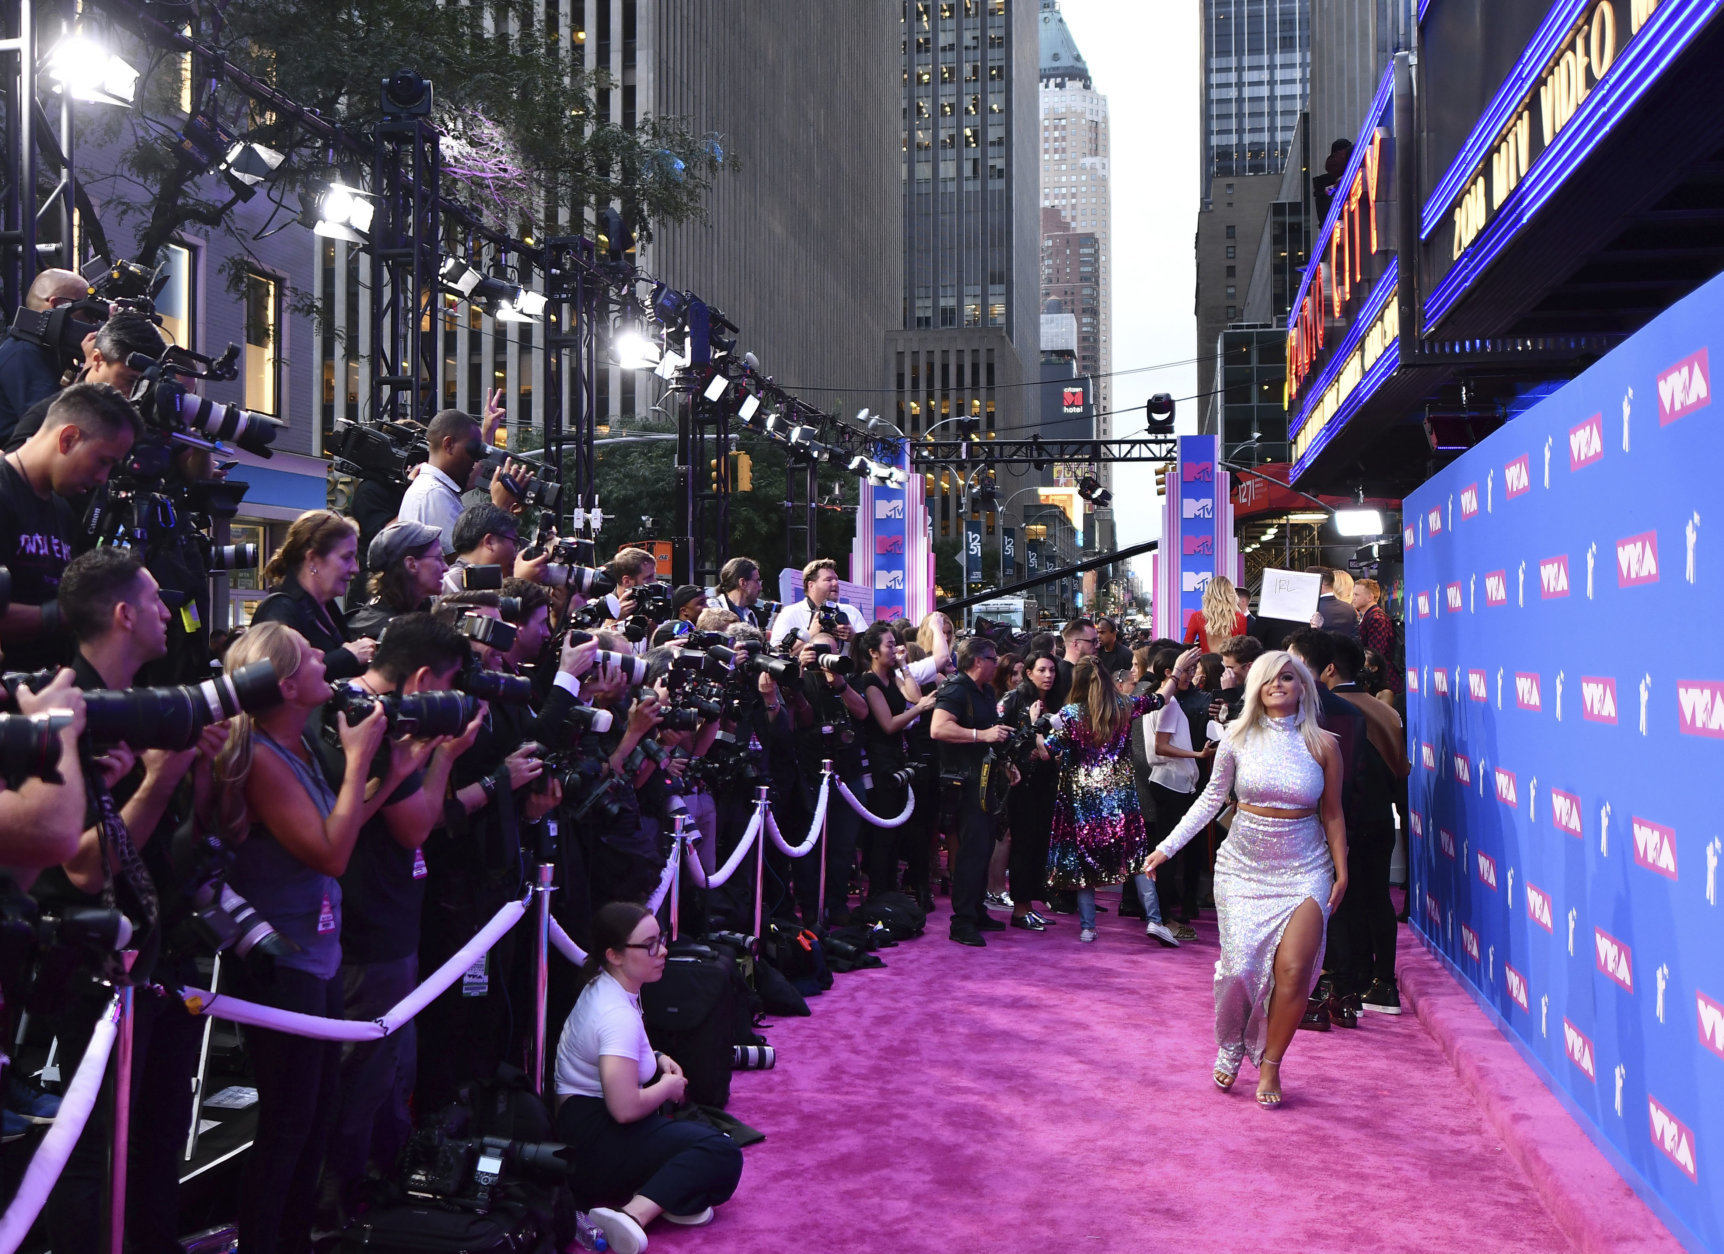 Bebe Rexha arrives at the MTV Video Music Awards at Radio City Music Hall on Monday, Aug. 20, 2018, in New York. (Photo by Charles Sykes/Invision/AP)